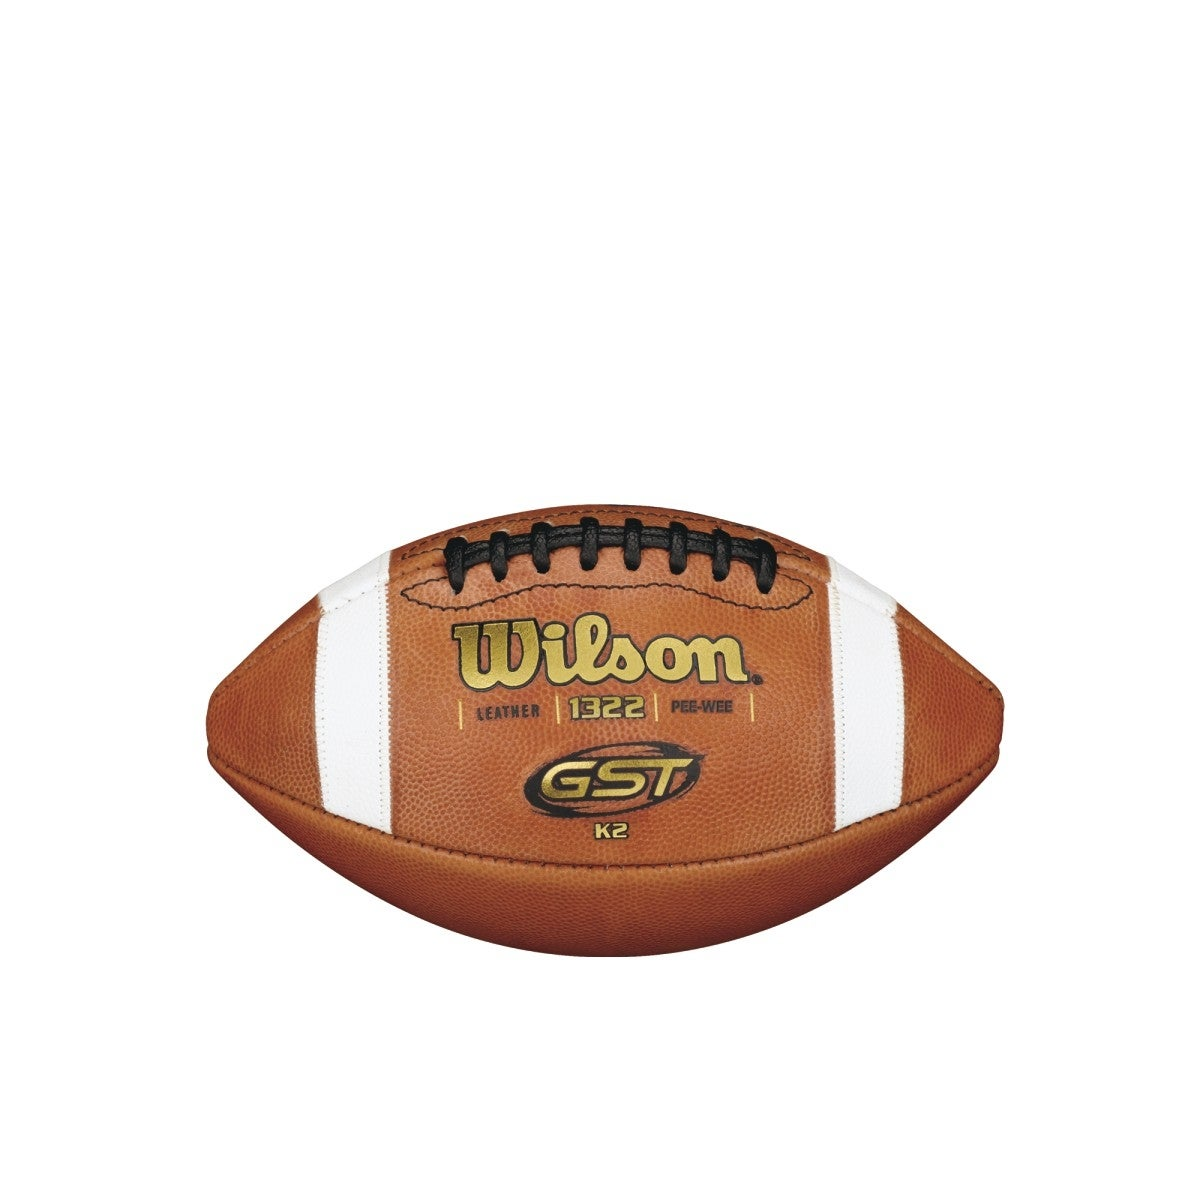 K2 GST Leather Football - Pee Wee